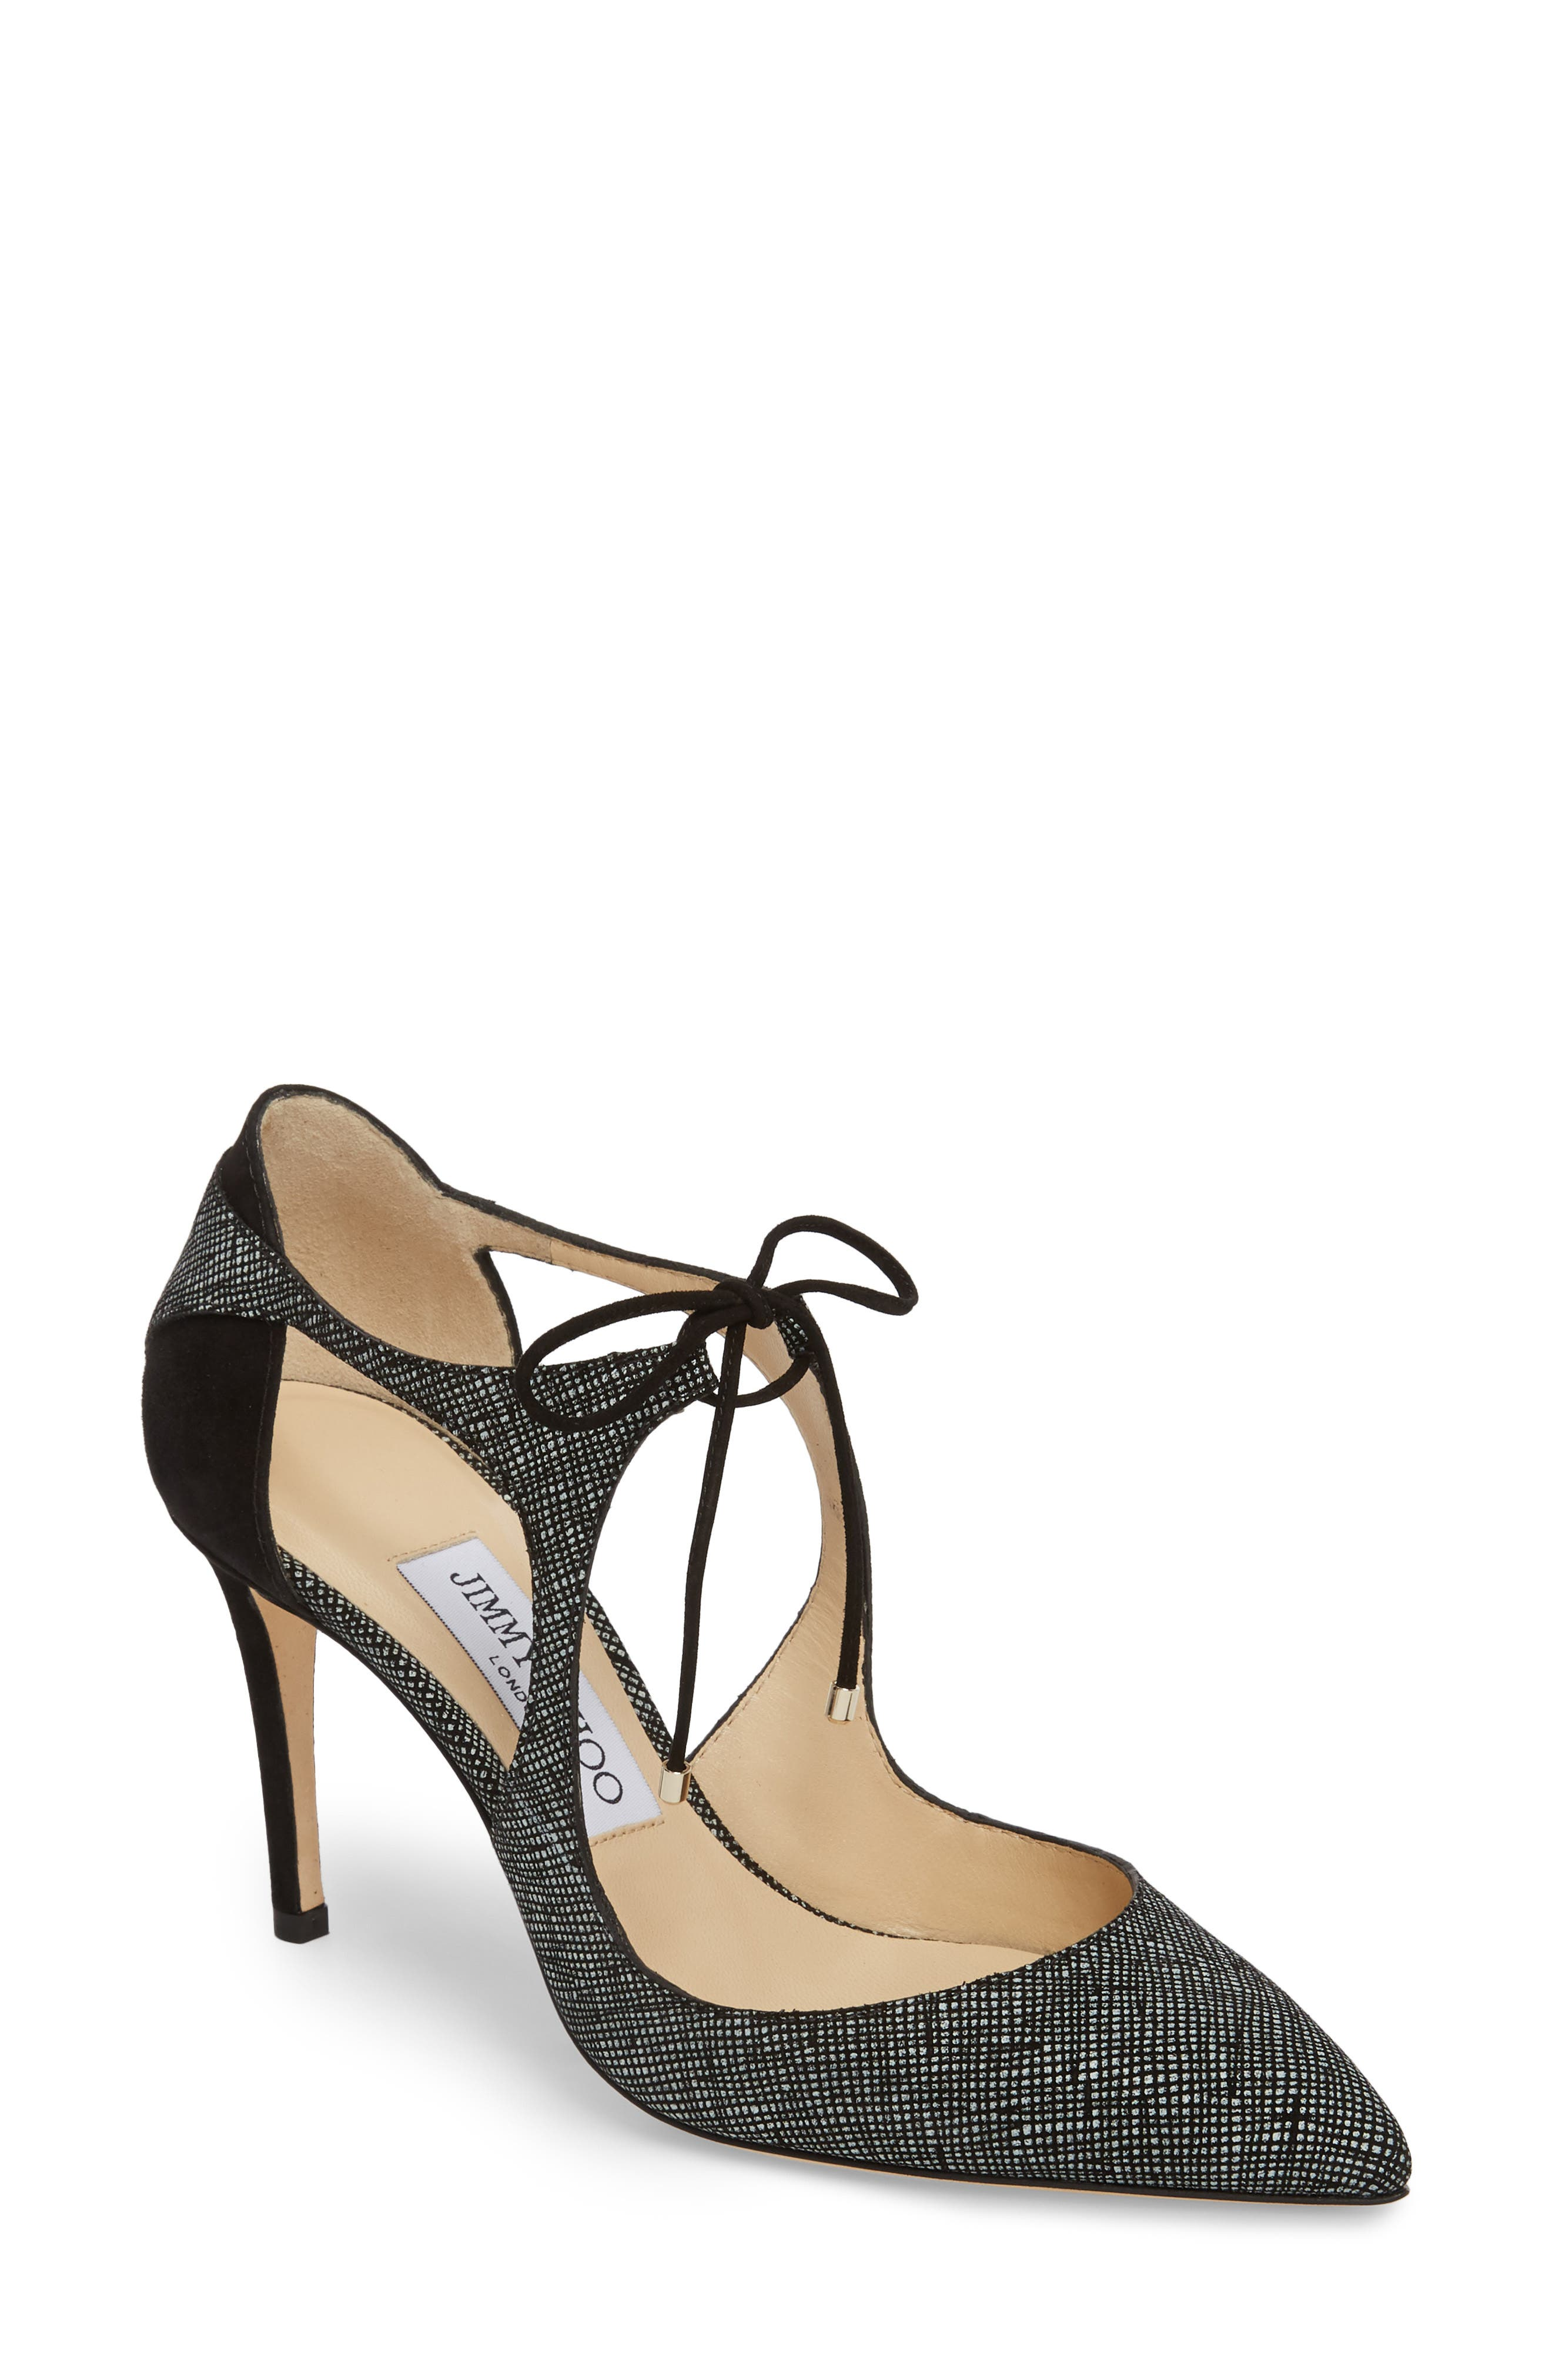 7fb8b687fb27 JIMMY CHOO Vanessa 85 Black Suede And Nappa Leather Pointy Toe Pumps ...